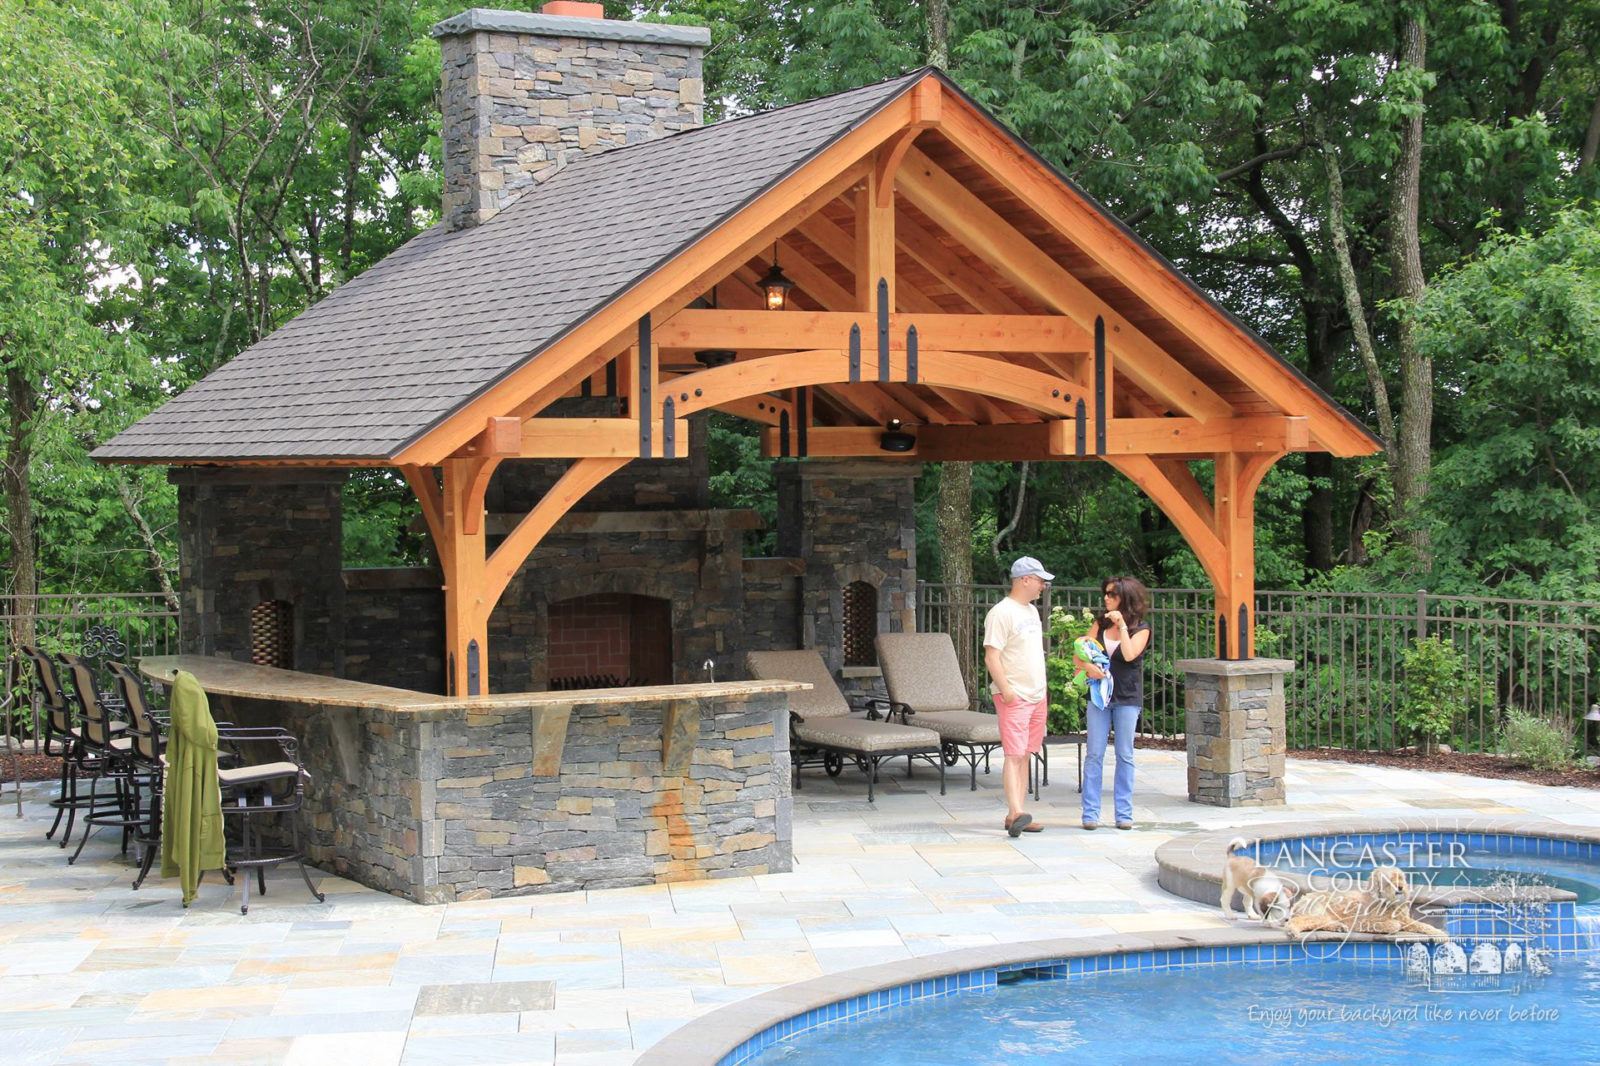 Beautiful Amish Pavilions: The Gazebo of Today | 2020 on Outdoor Patio Pavilion id=64840